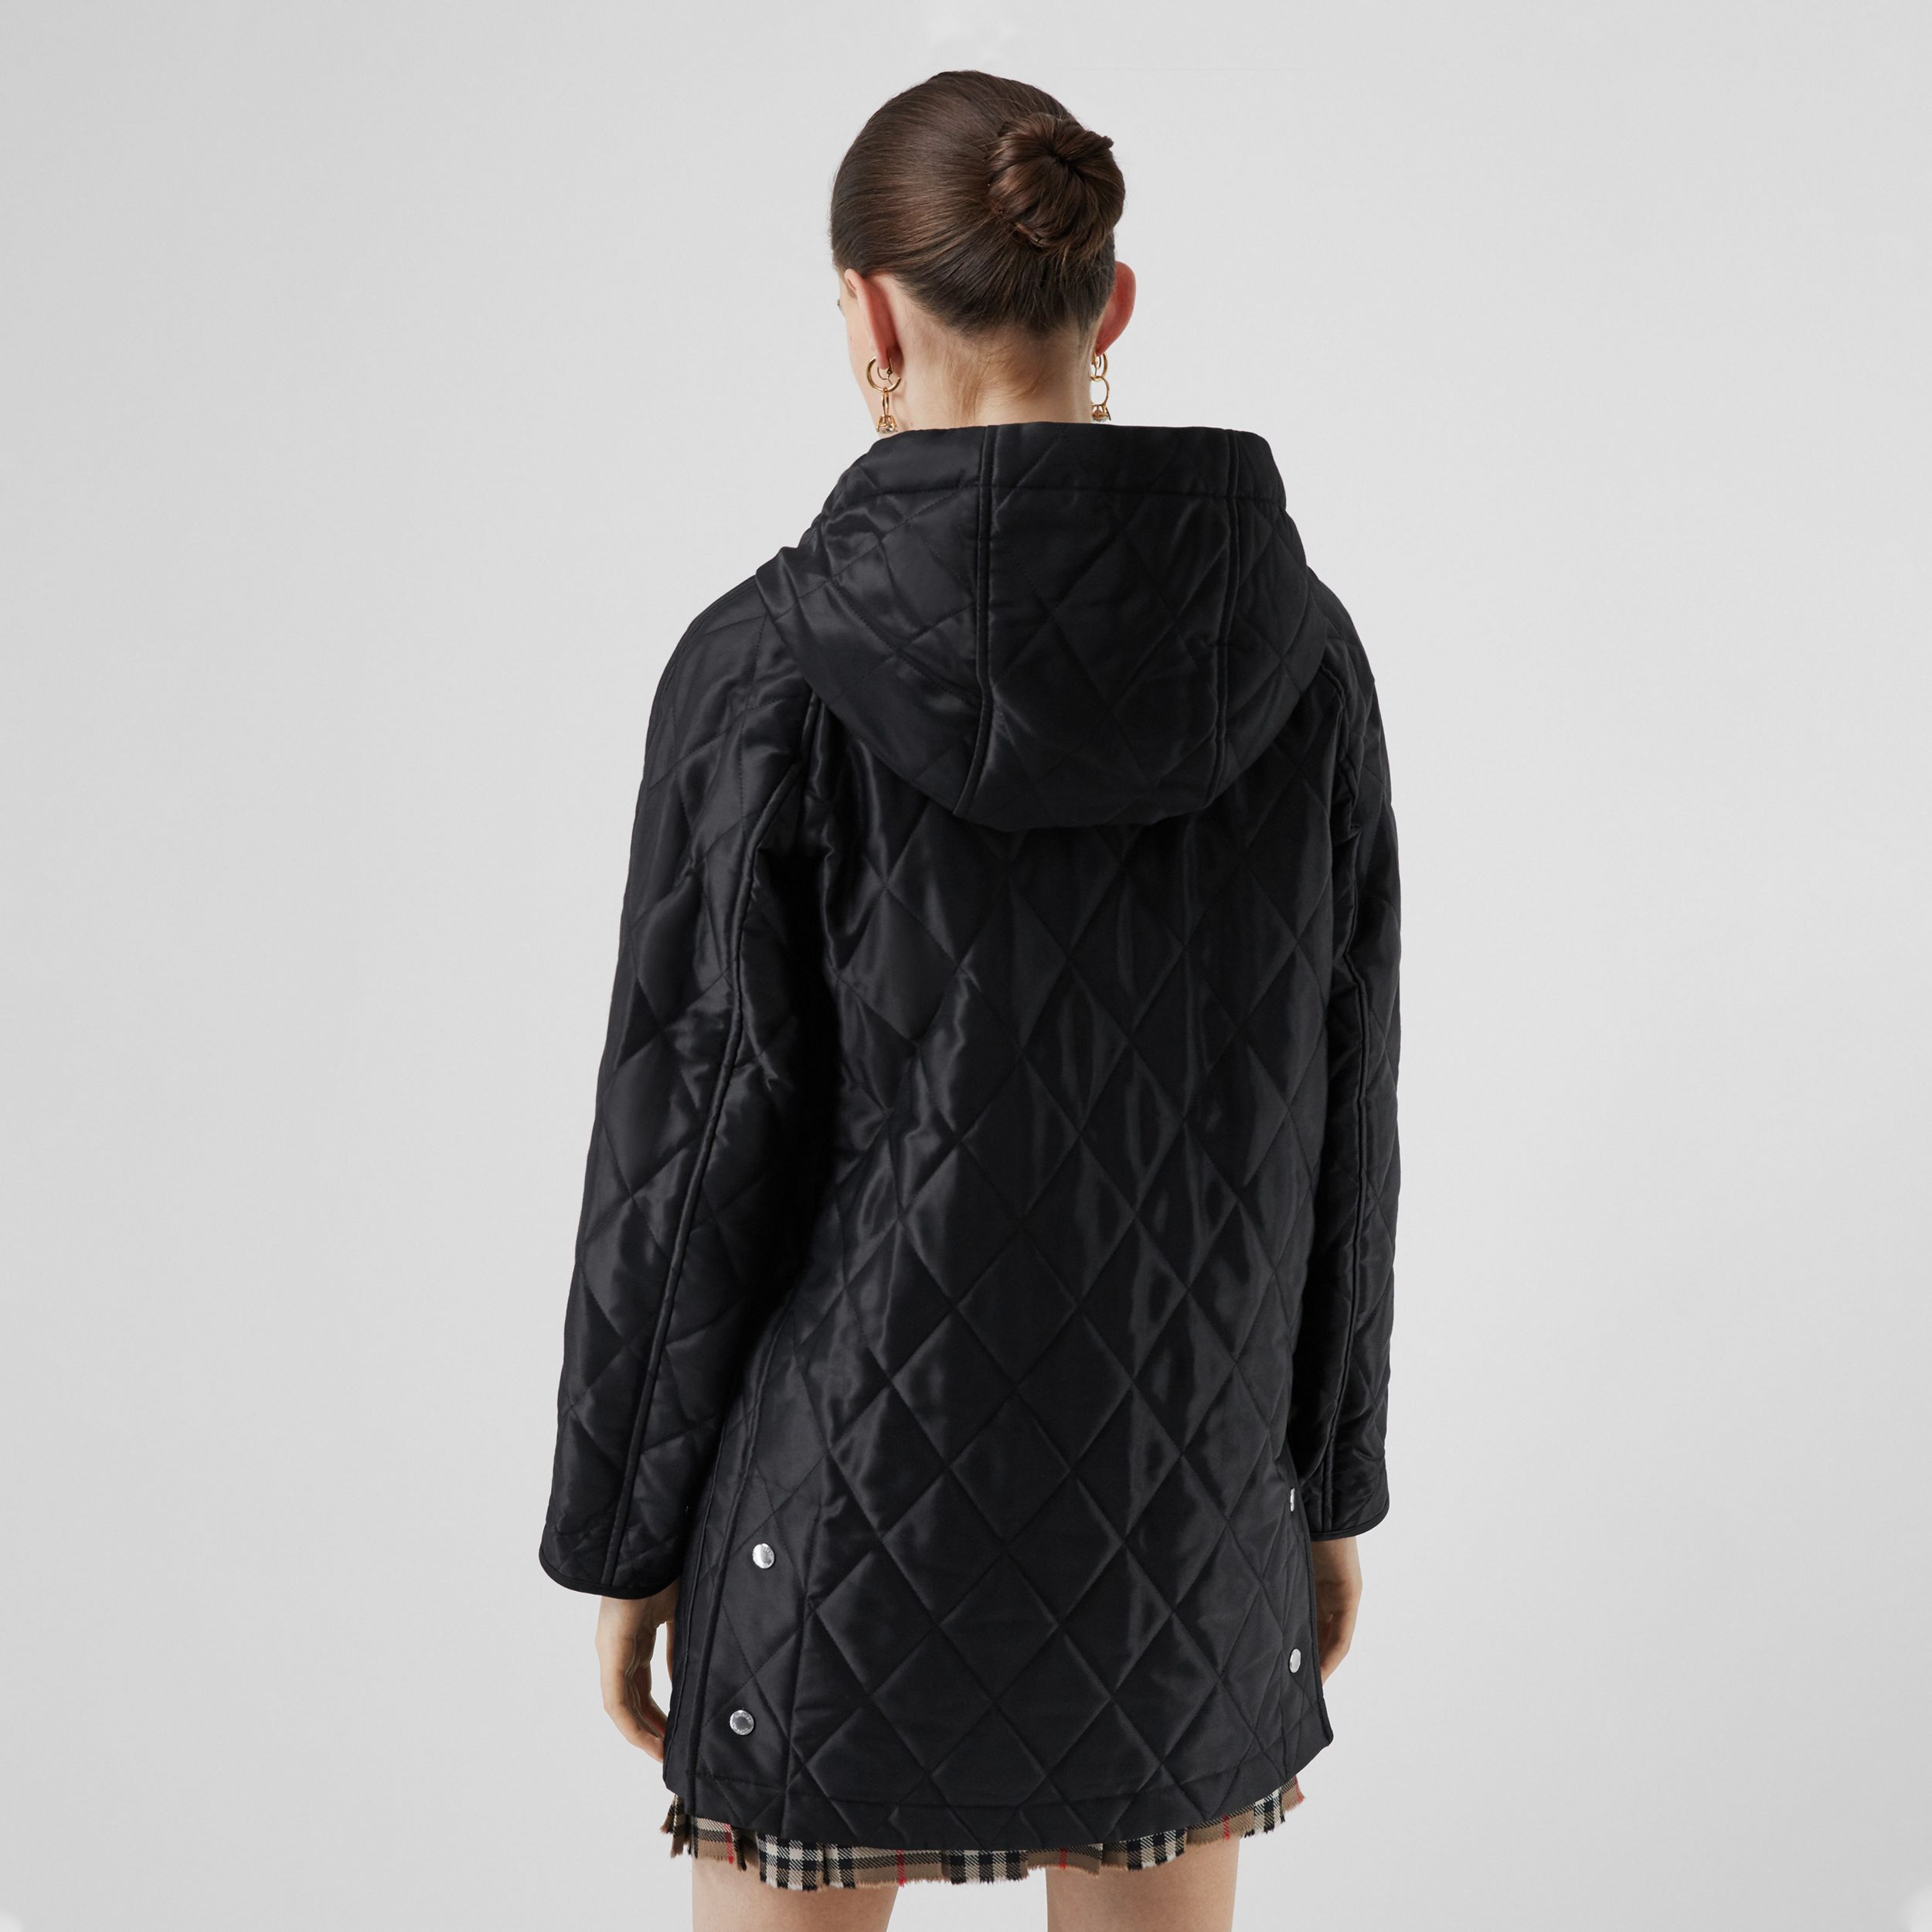 Diamond Quilted Cotton Hooded Coat in Black - Women | Burberry - 3